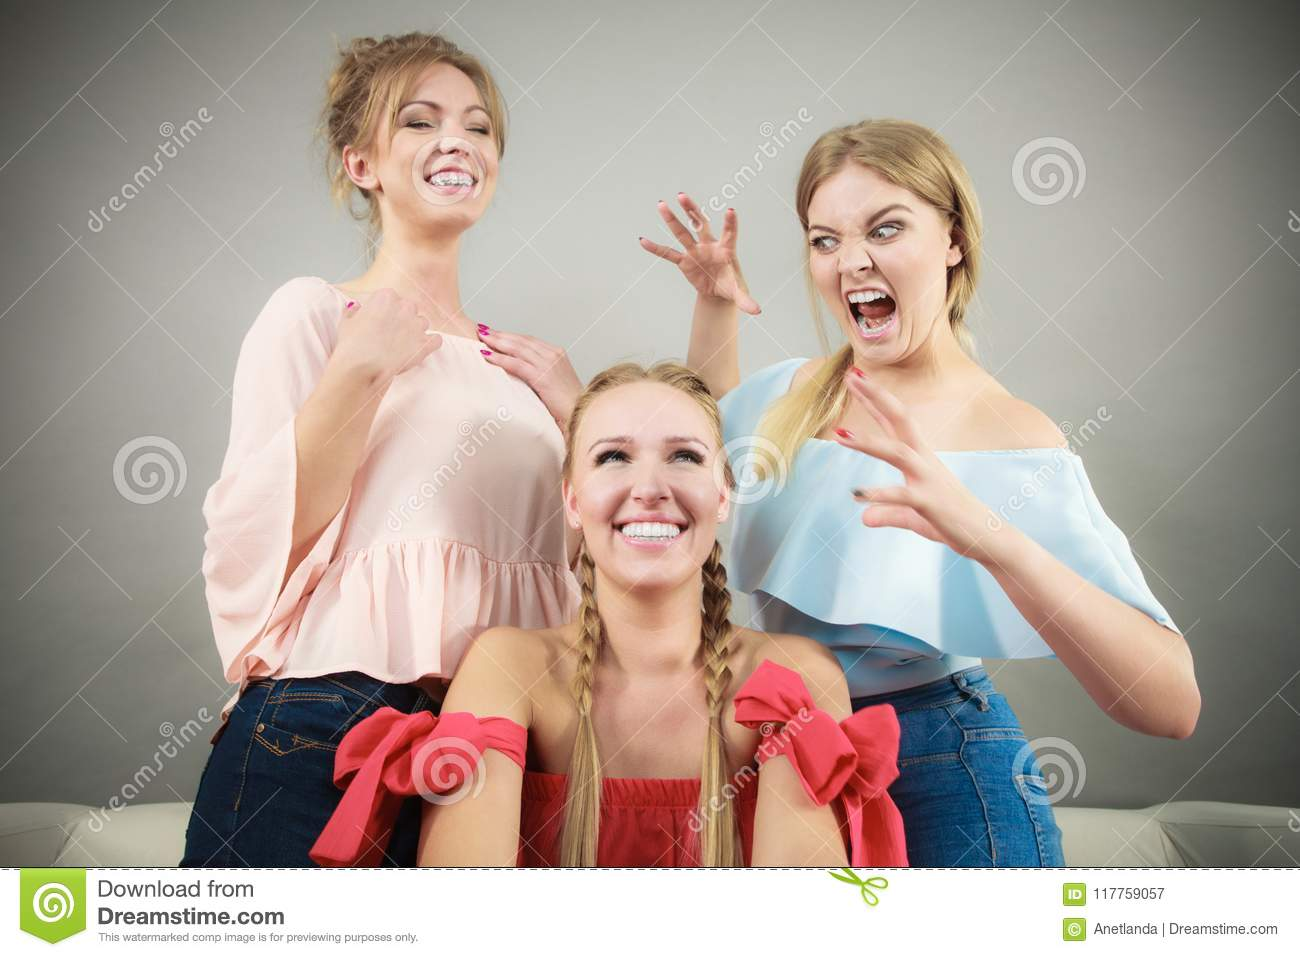 womens friendships and jealousy